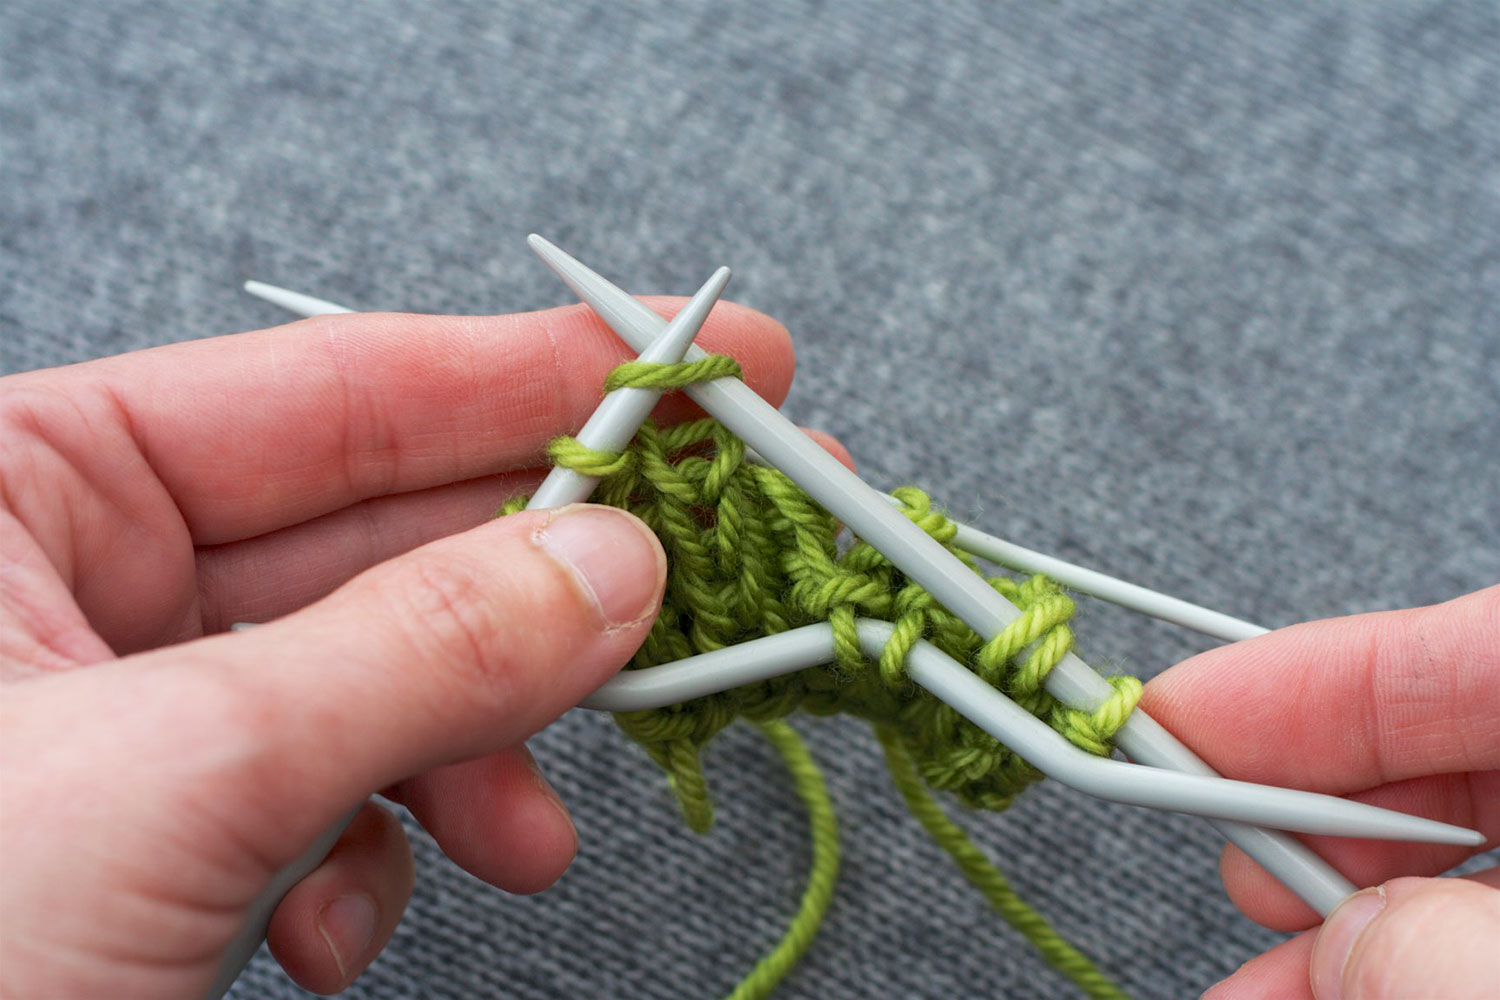 With one cable needle hanging at front and other at back, right needle is inserted in next stitch on left needle knitwise, preparing to knit the stitch.